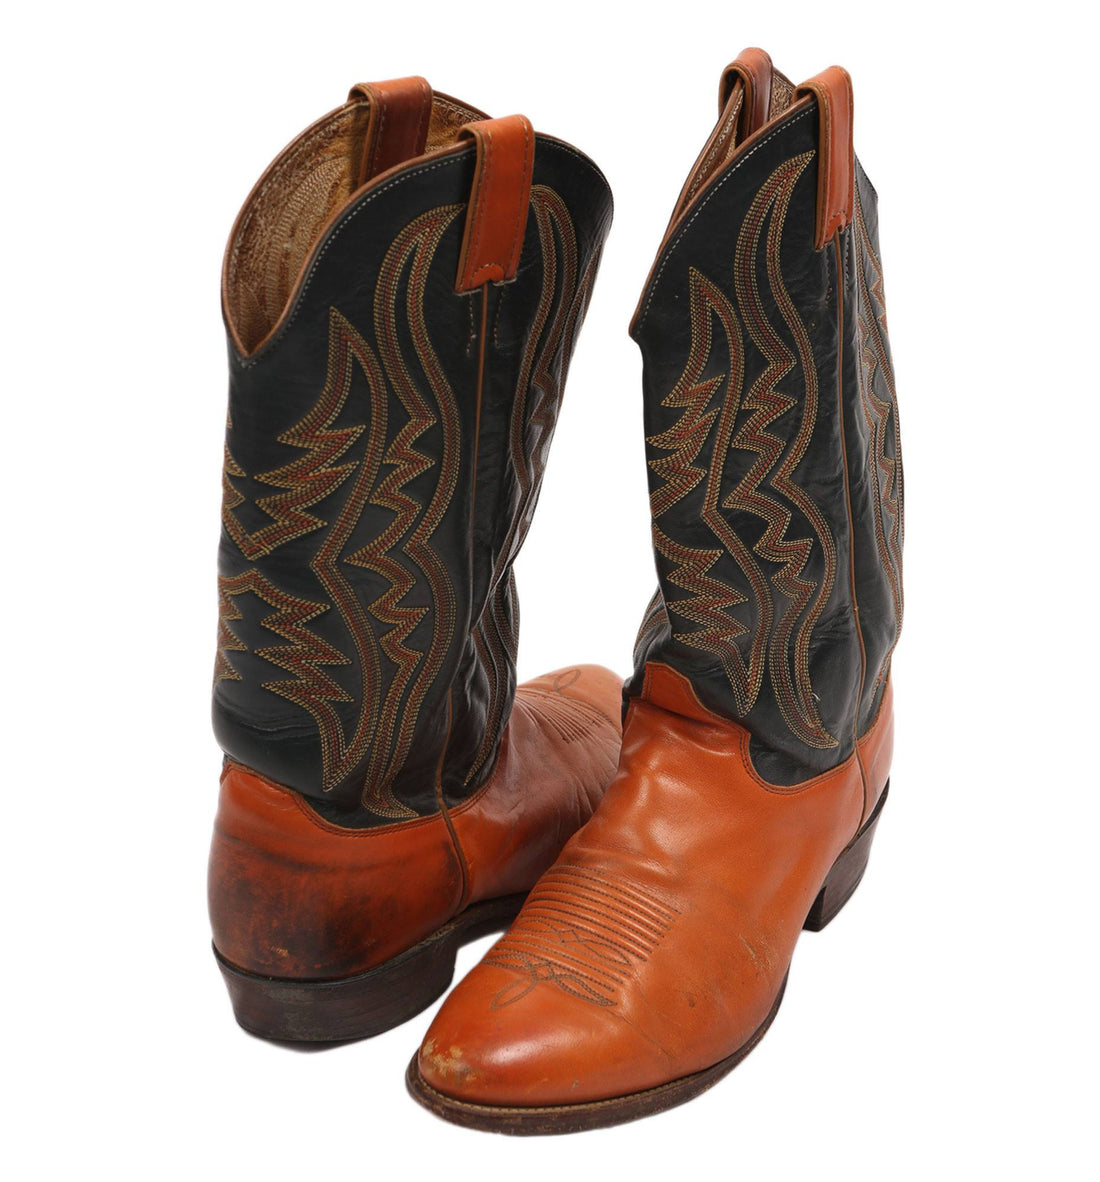 Vintage Leather Justin Boots - Vintage: Men's: Shoes - Iron and Resin